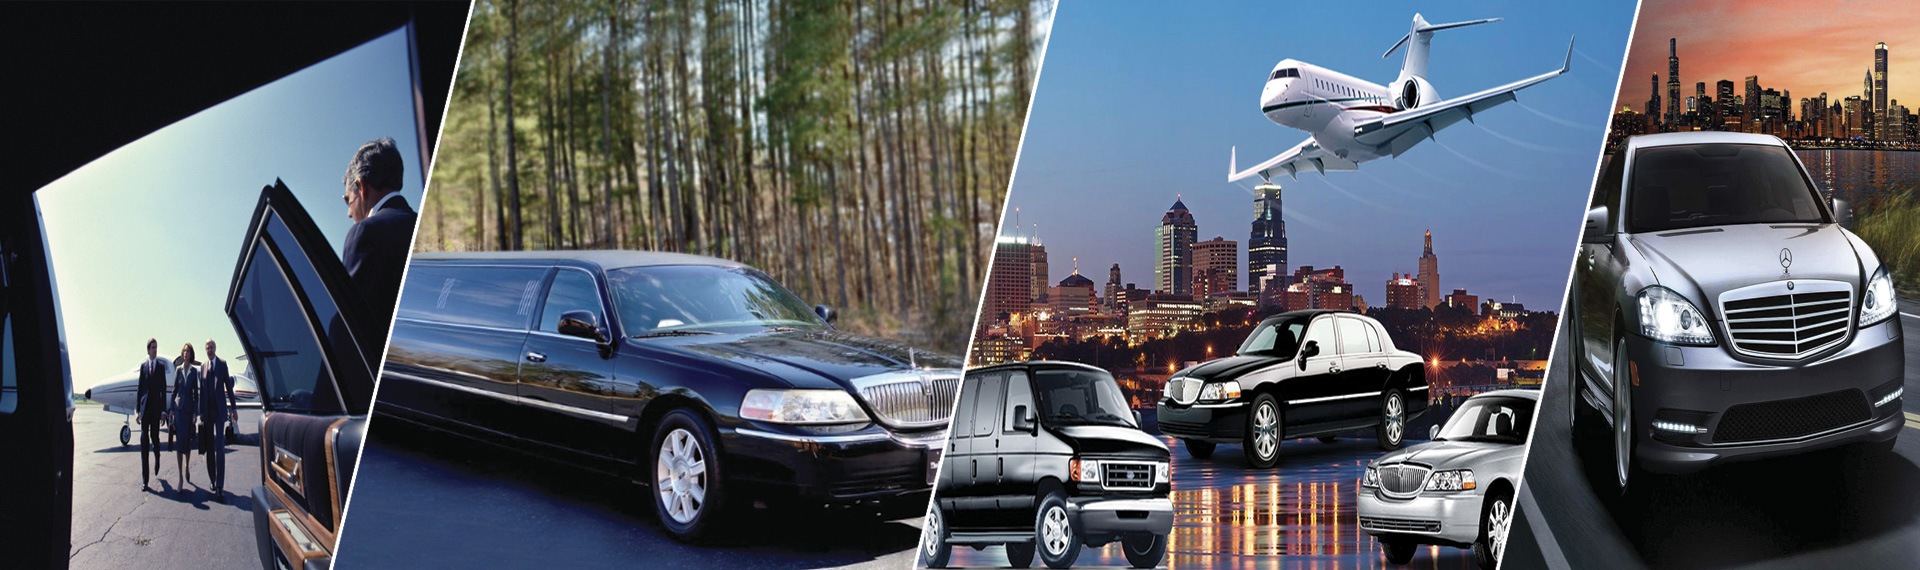 Luxe Limousine Brookhaven PA